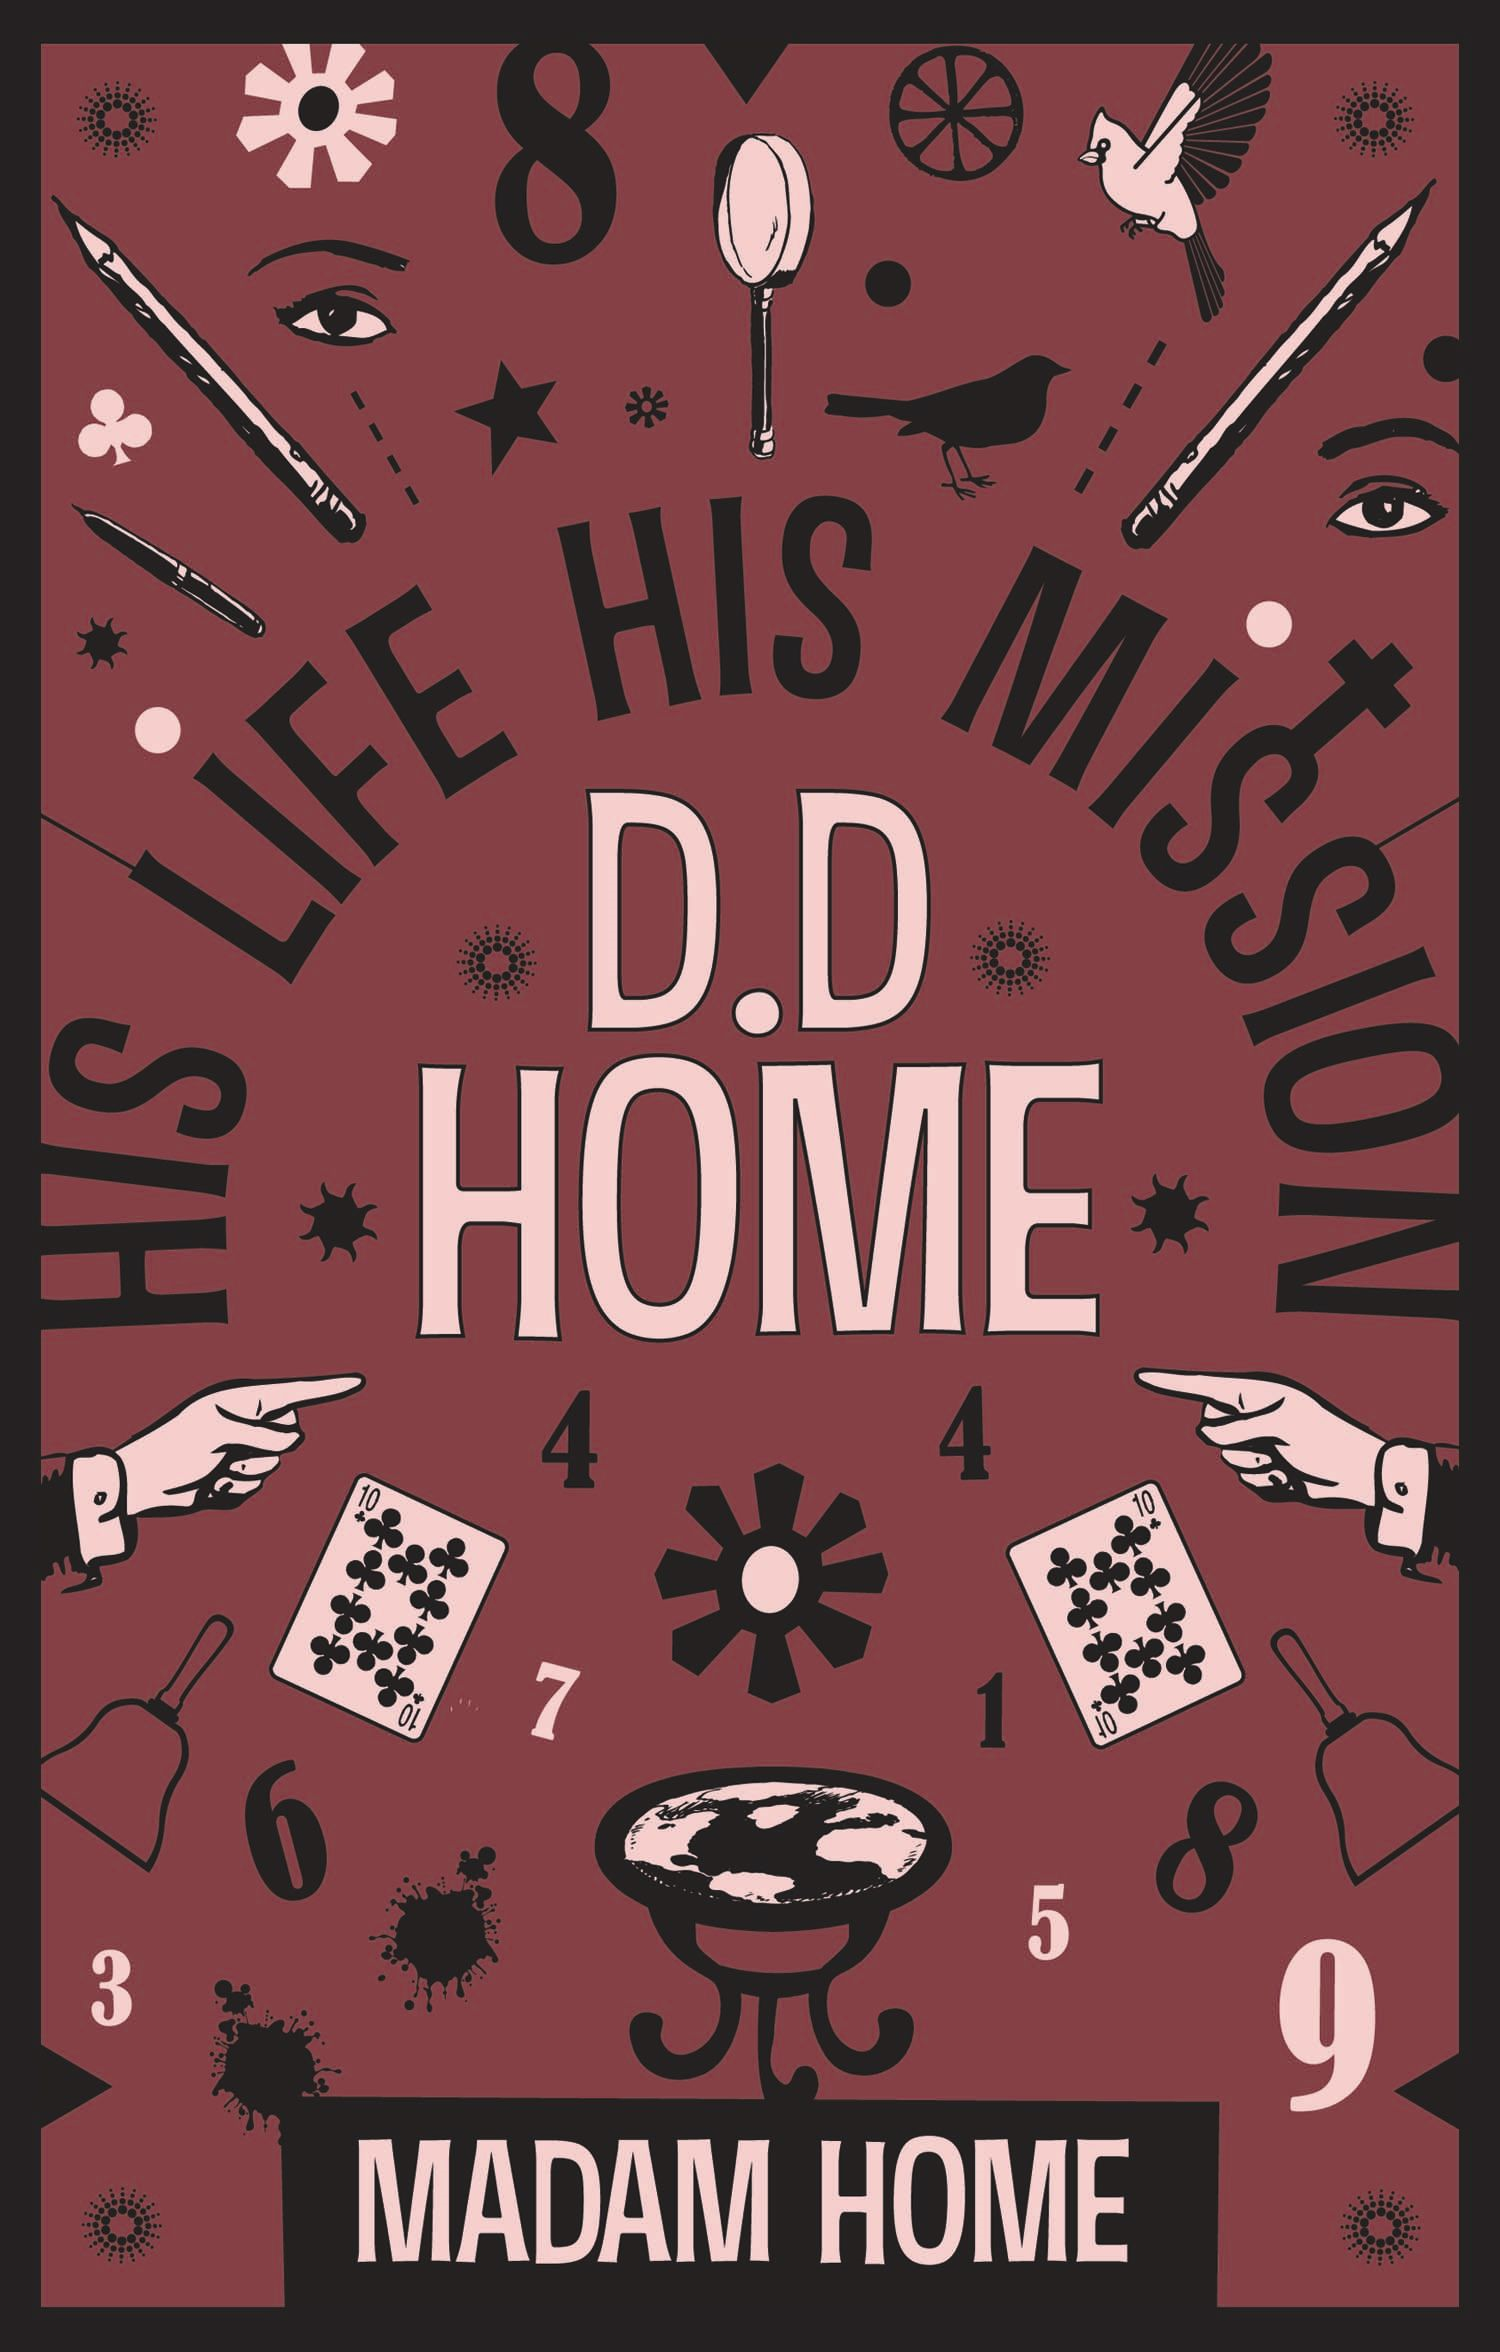 D. D. Home His Life His Mission